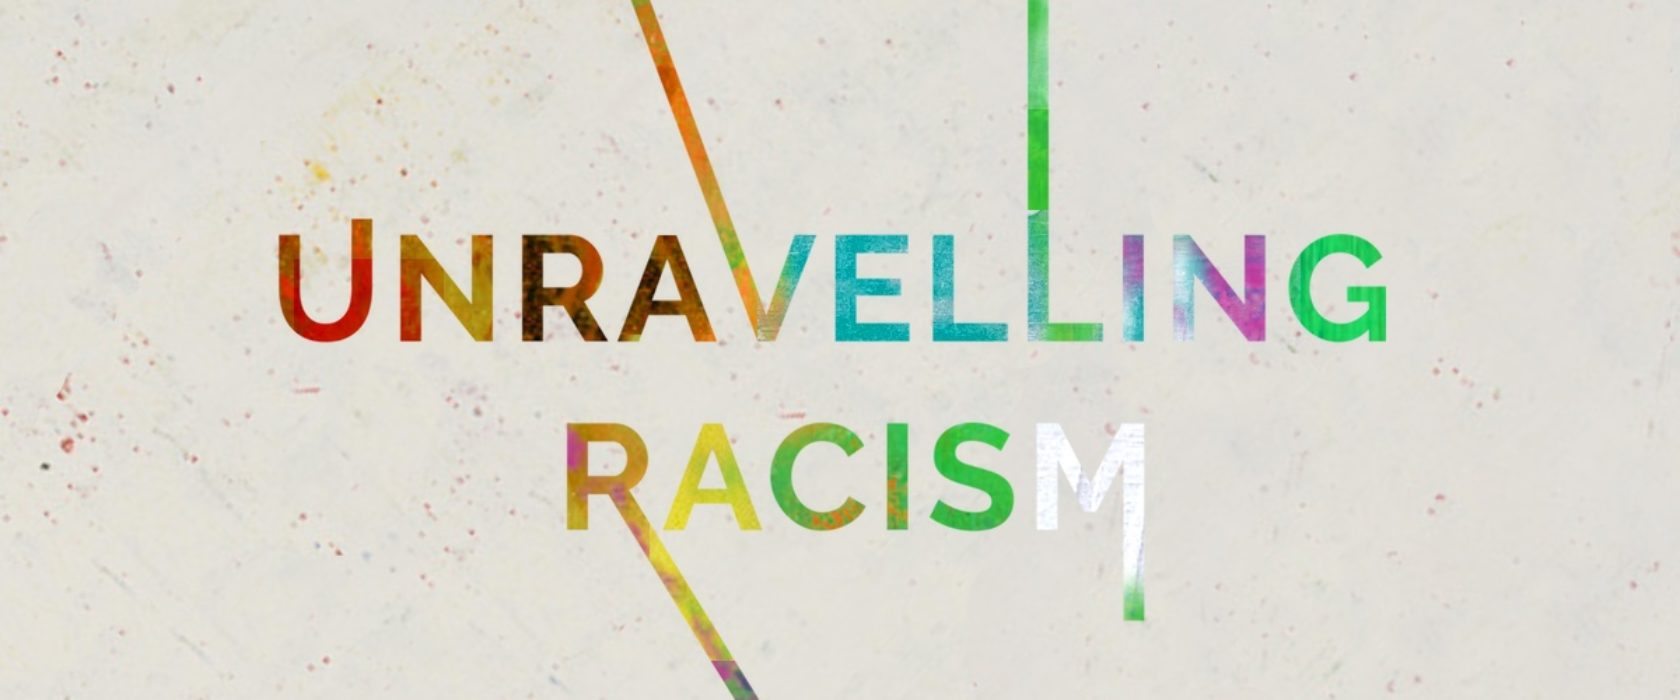 Starter Resources for Unravelling the Deep Roots of Racism in America